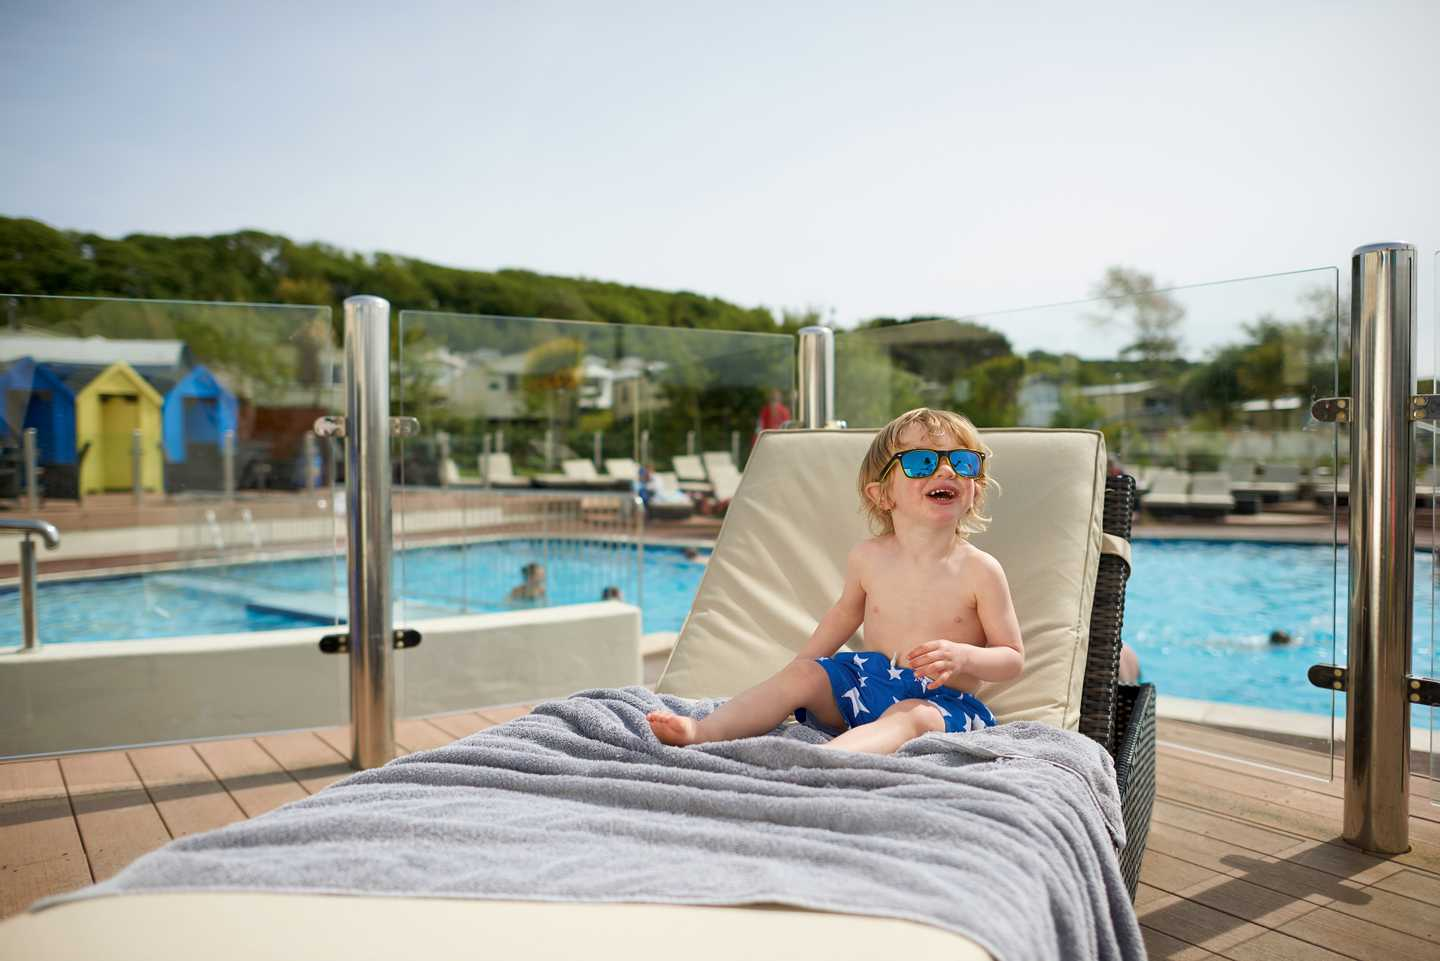 Child laying on the sun lounger by the outdoor pool